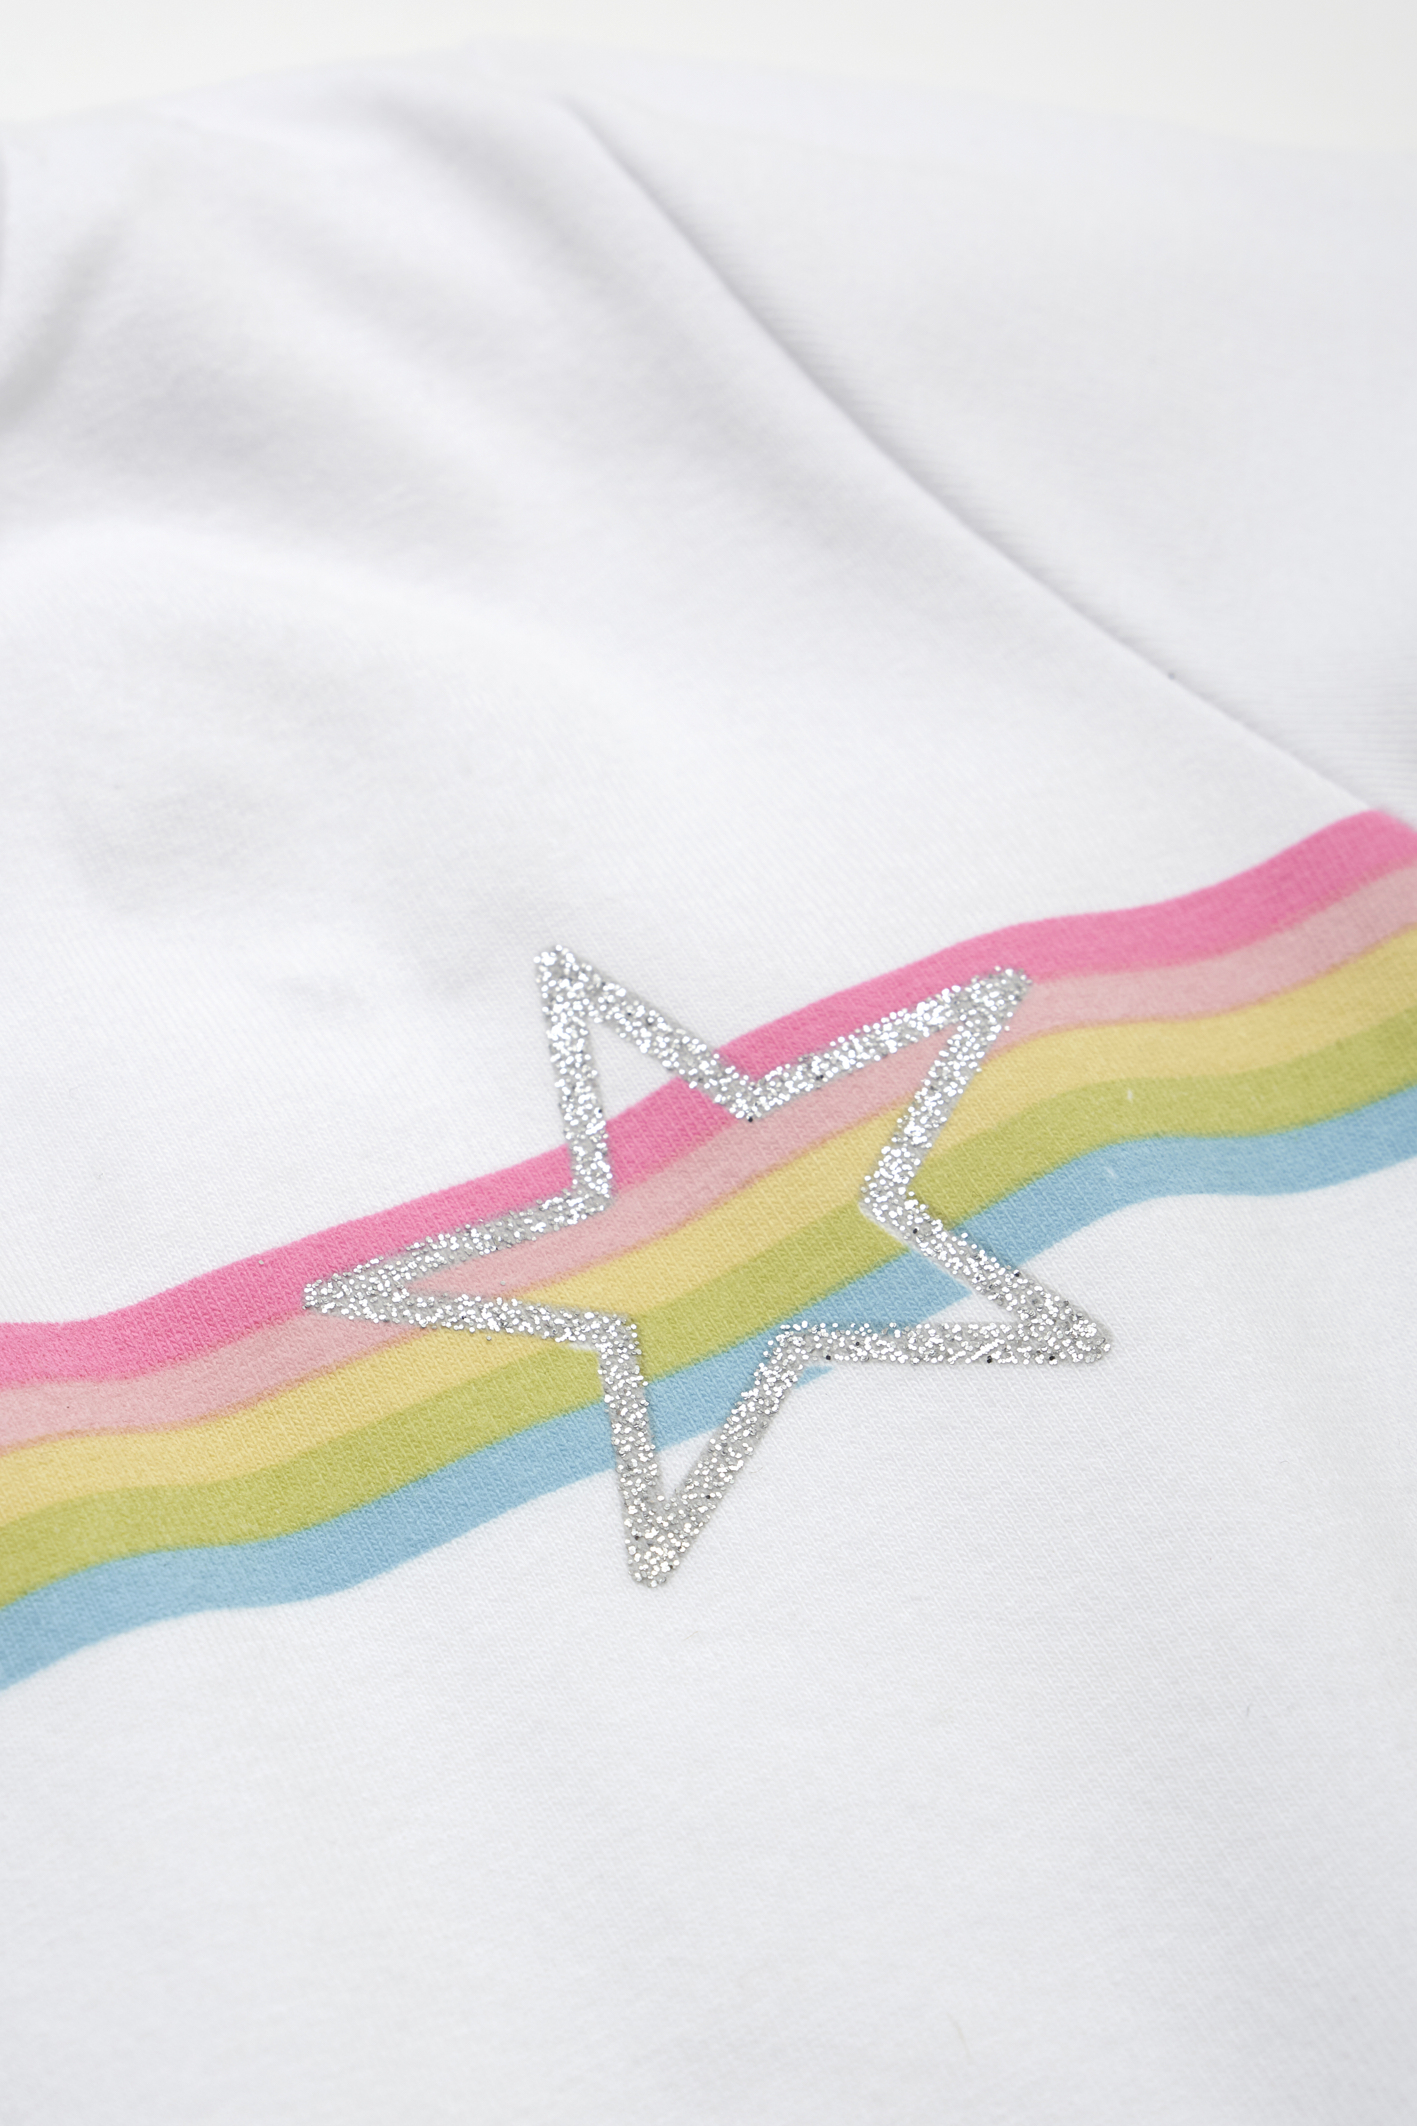 cheeky_remera-colors-m-l_15-27-2020__picture-72448